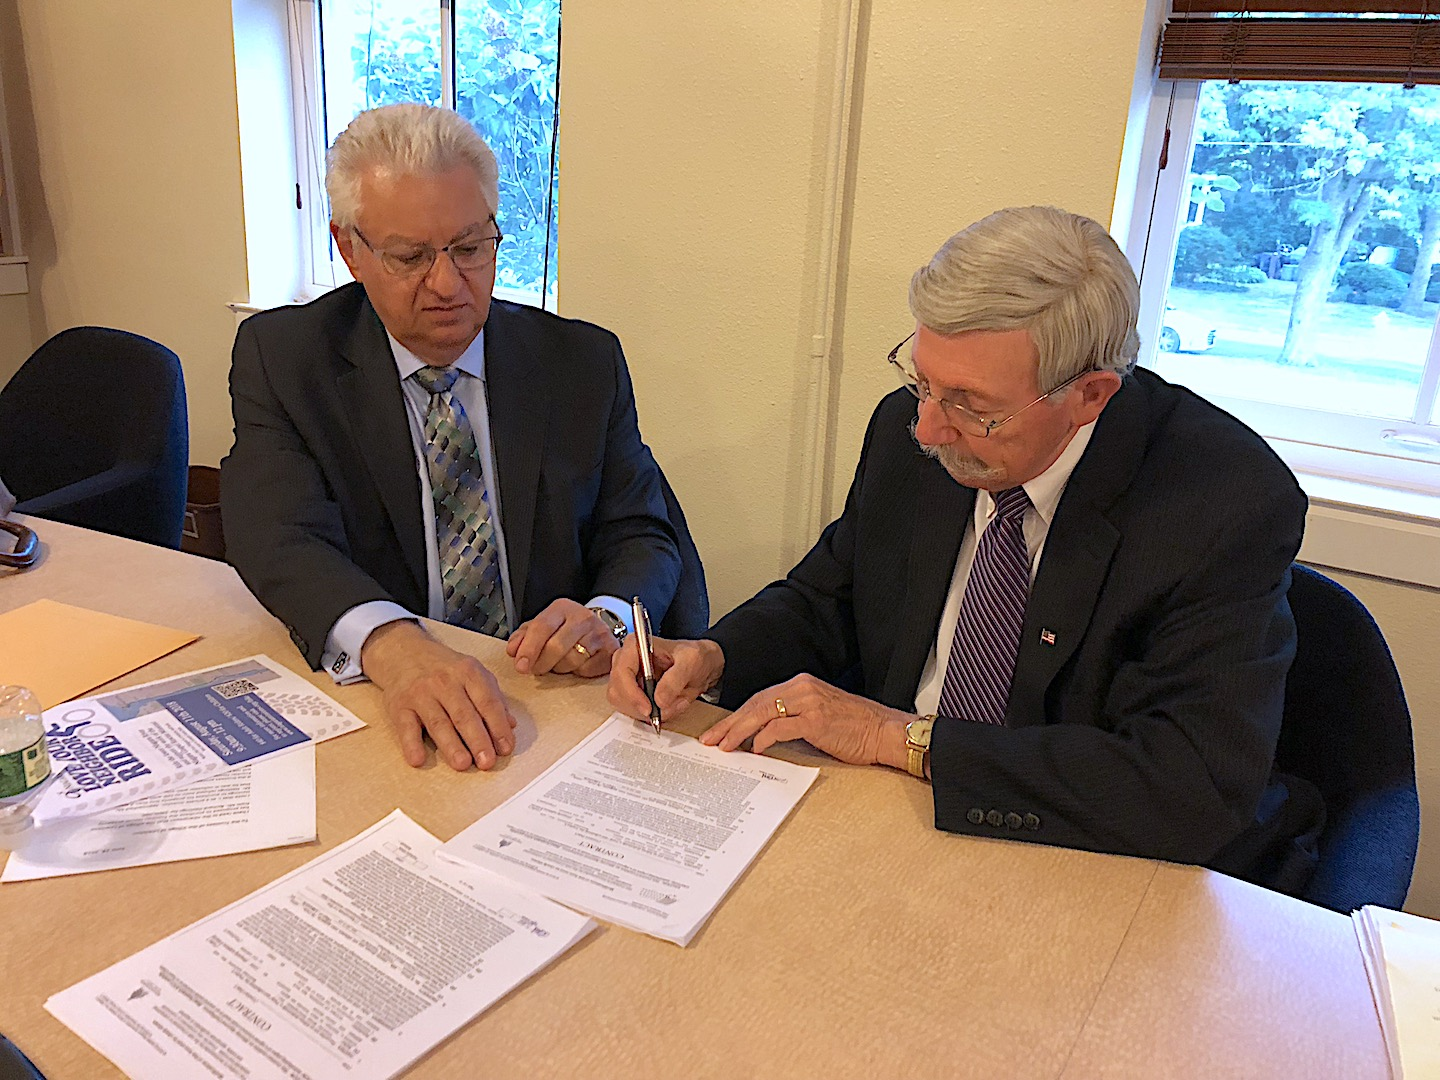 Village of Lewiston Mayor Terry Collesano signs the Frontier House purchase agreement as counsel Joseph Leone advises him on Monday.